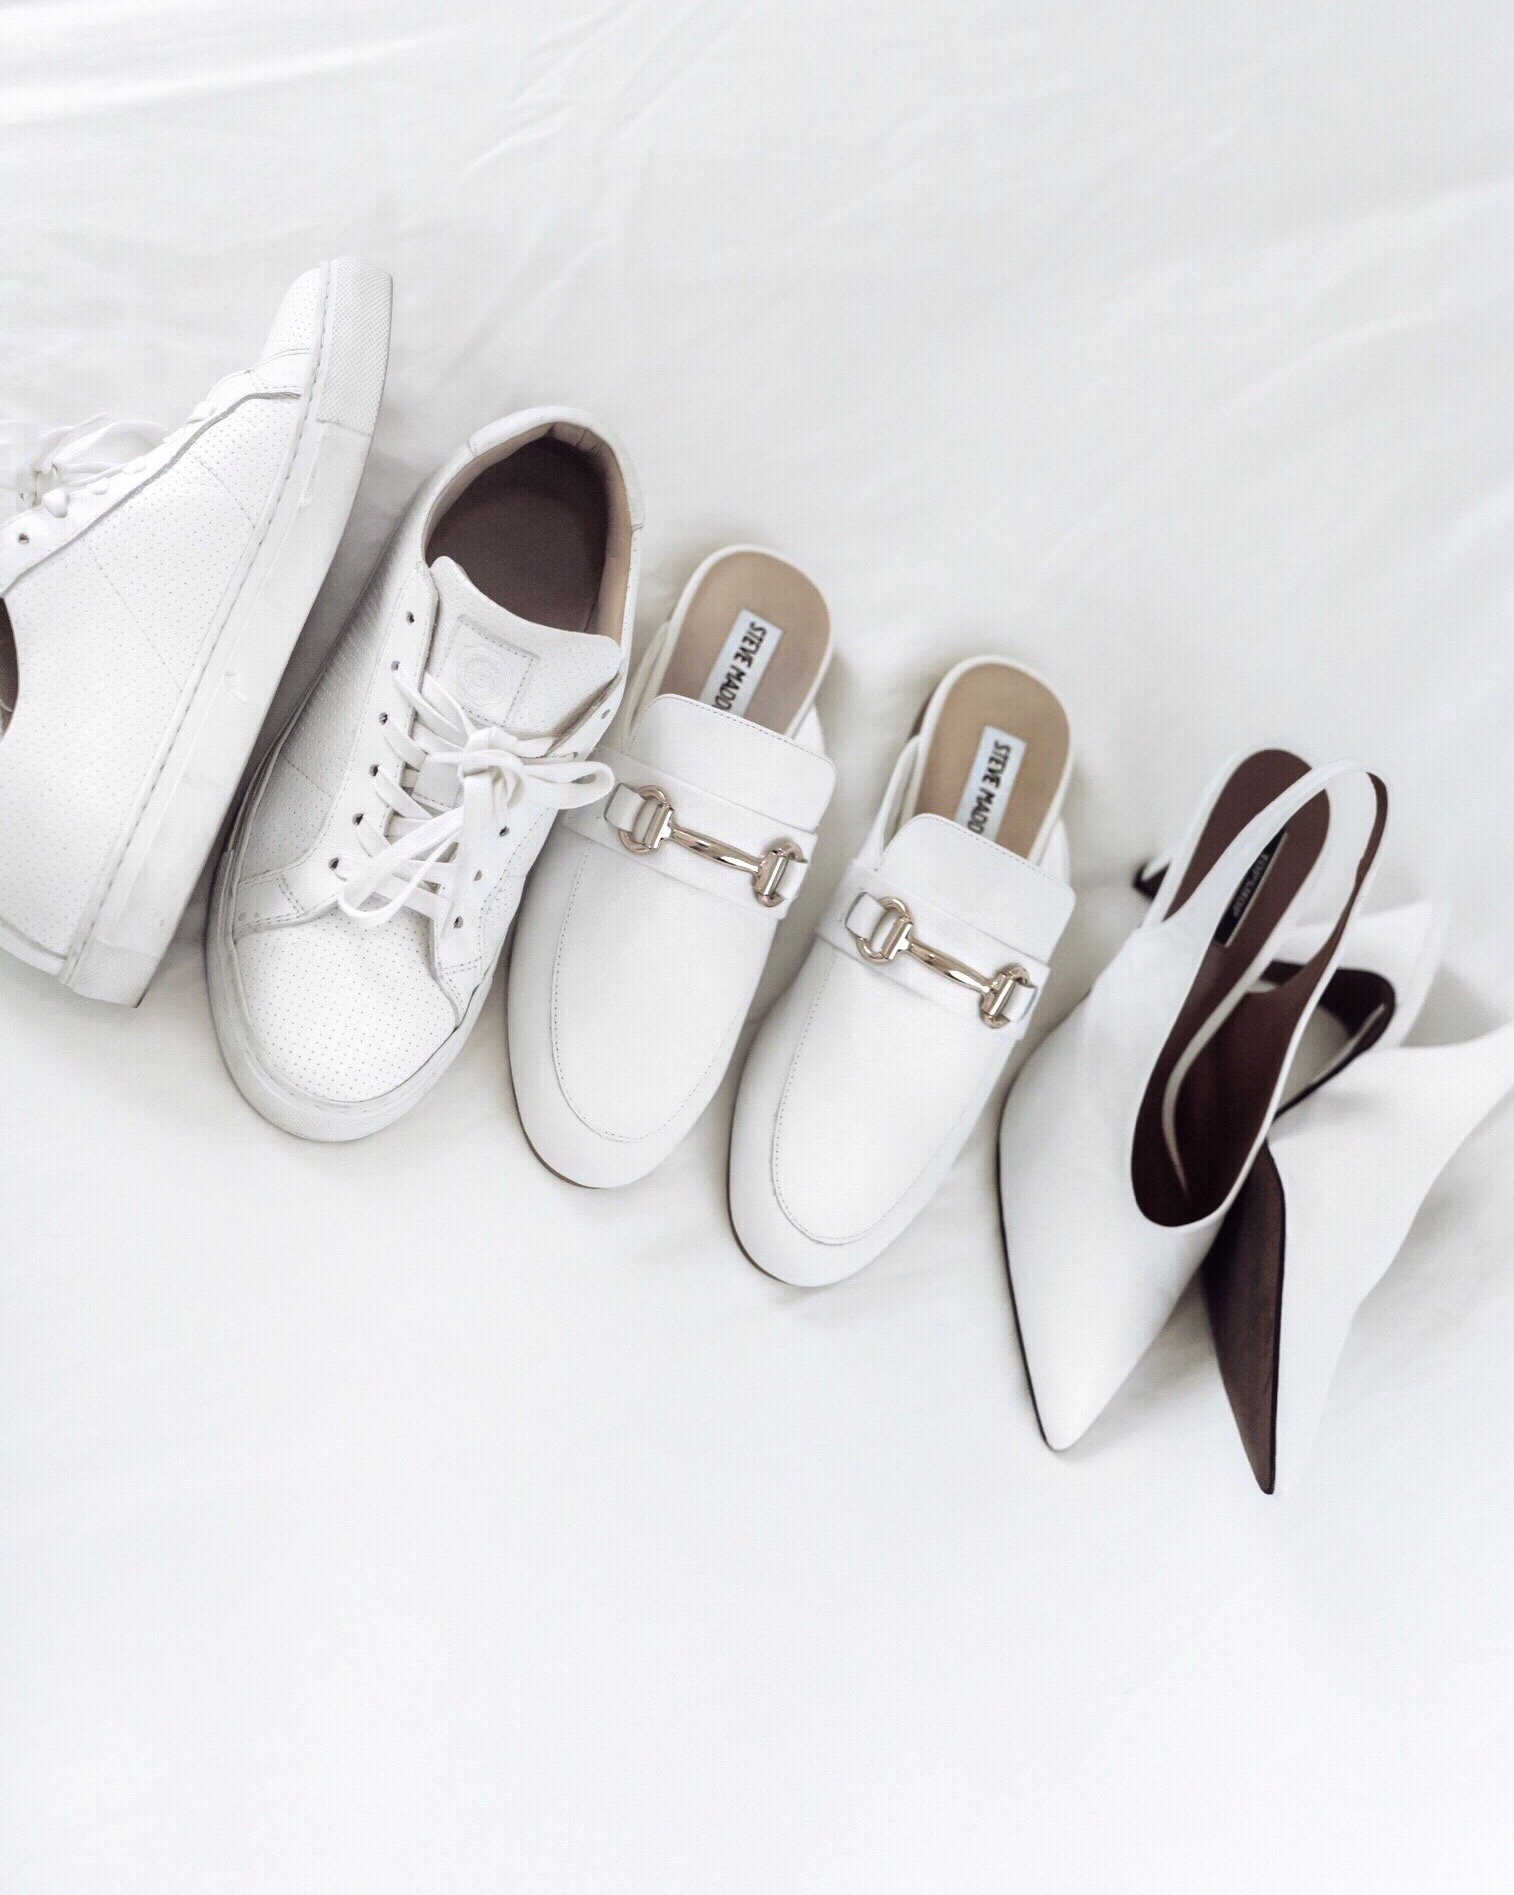 FRIDAY FEELS | shop the post |The white shoe obsession is real this year and it's such a huge trend right now. I prefer the classic styles that stay around like these white loafers by Steve Madden. I just got them in and I can't wait to style them with cozy sweaters and denim this fall!